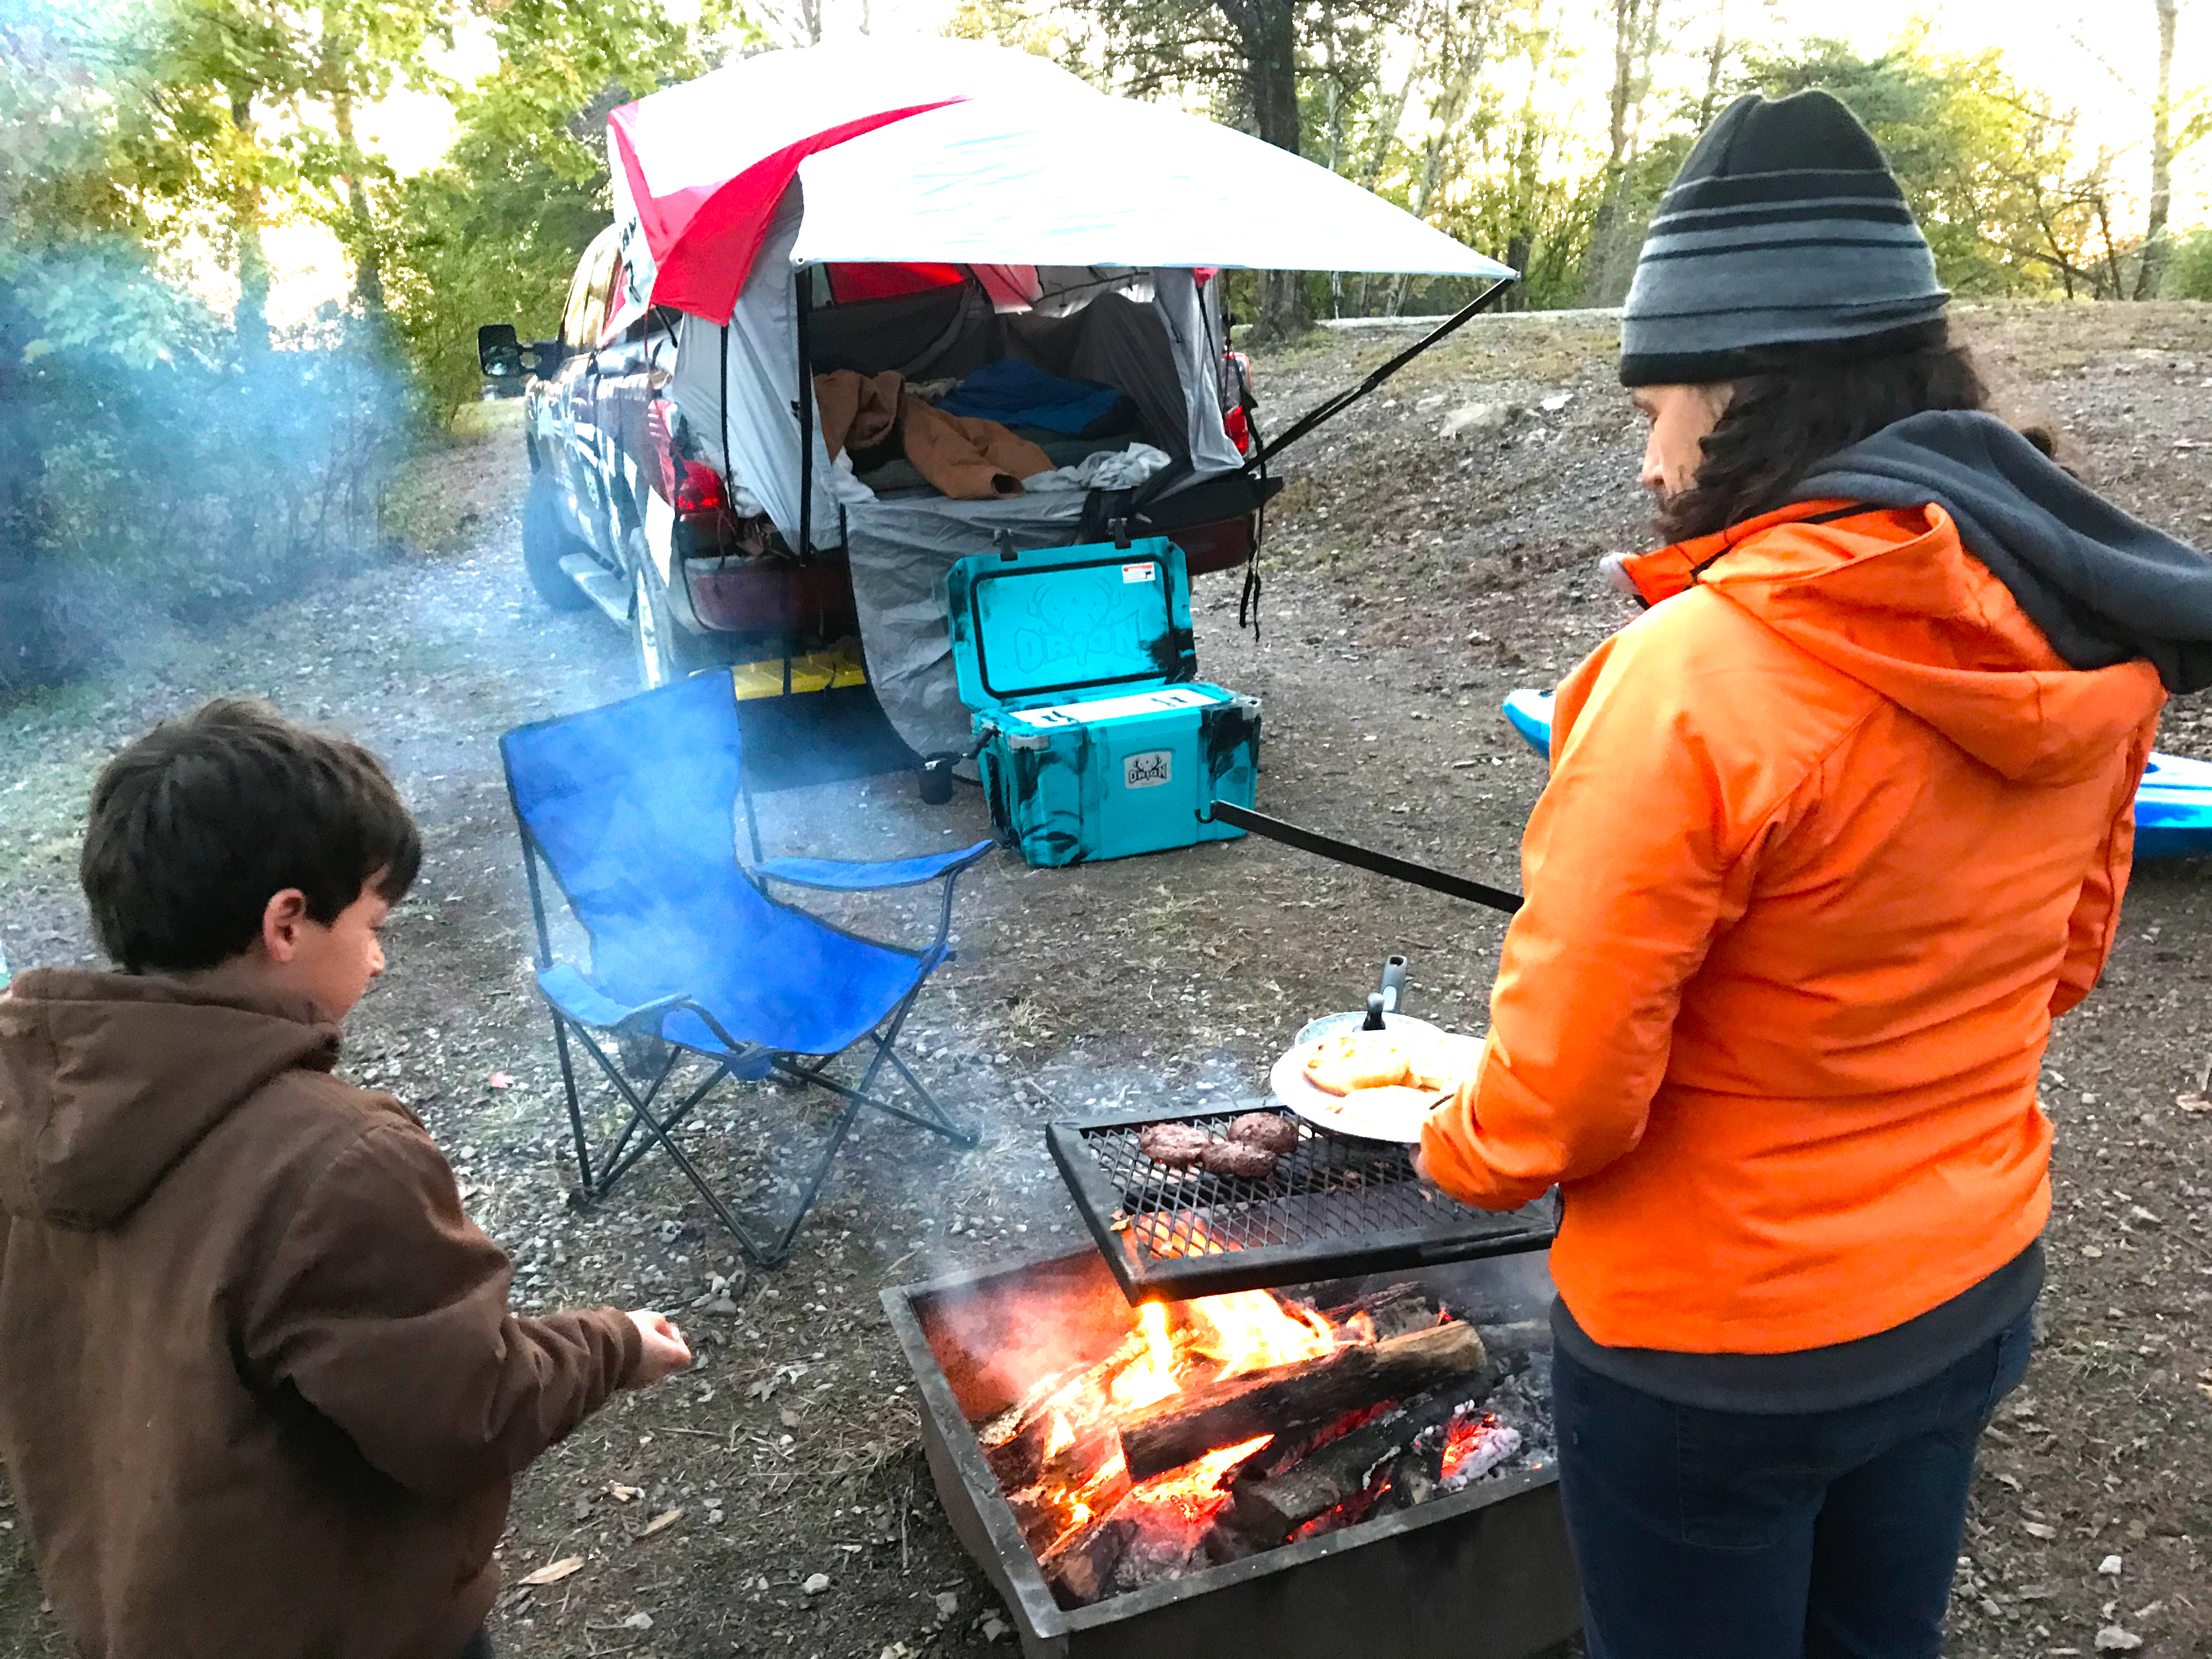 Cooking at Windrock Park in Oliver Springs, TN